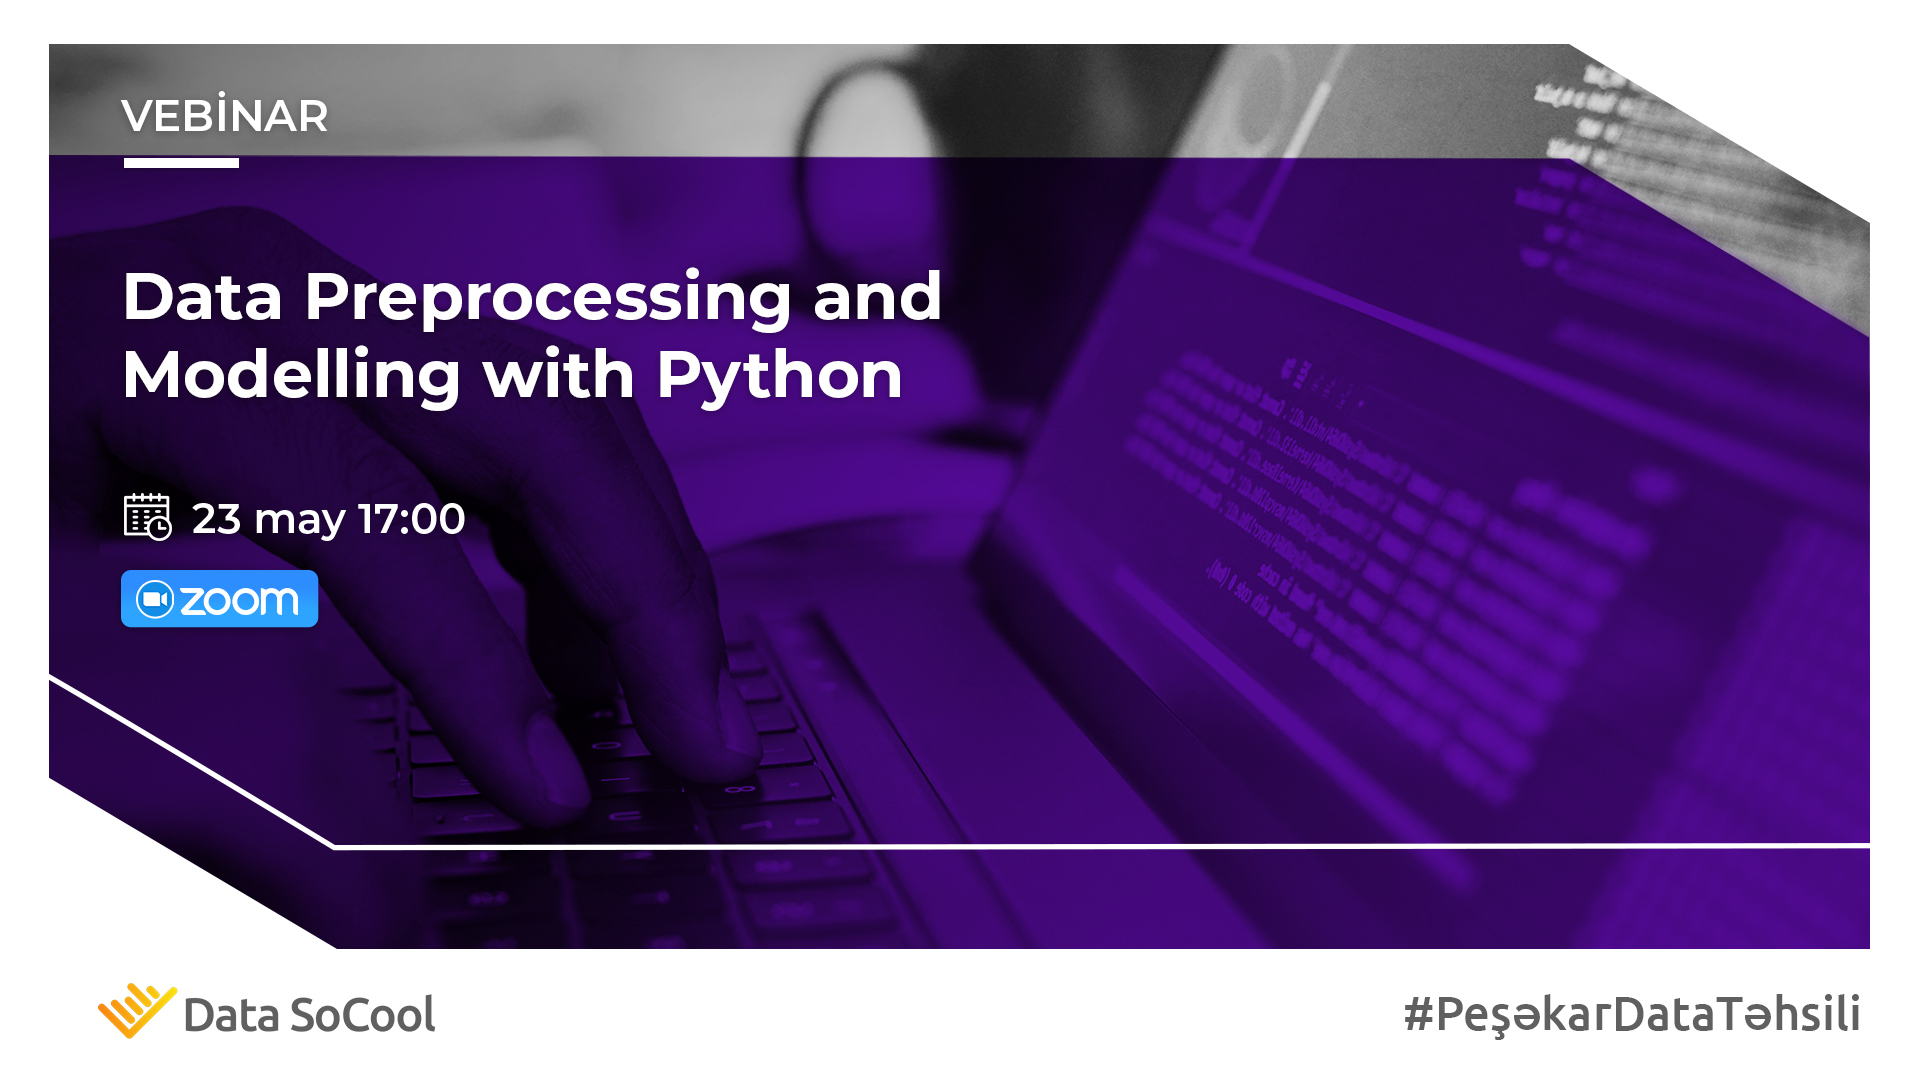 Webinar: Data Preprocessing and Modelling with Python